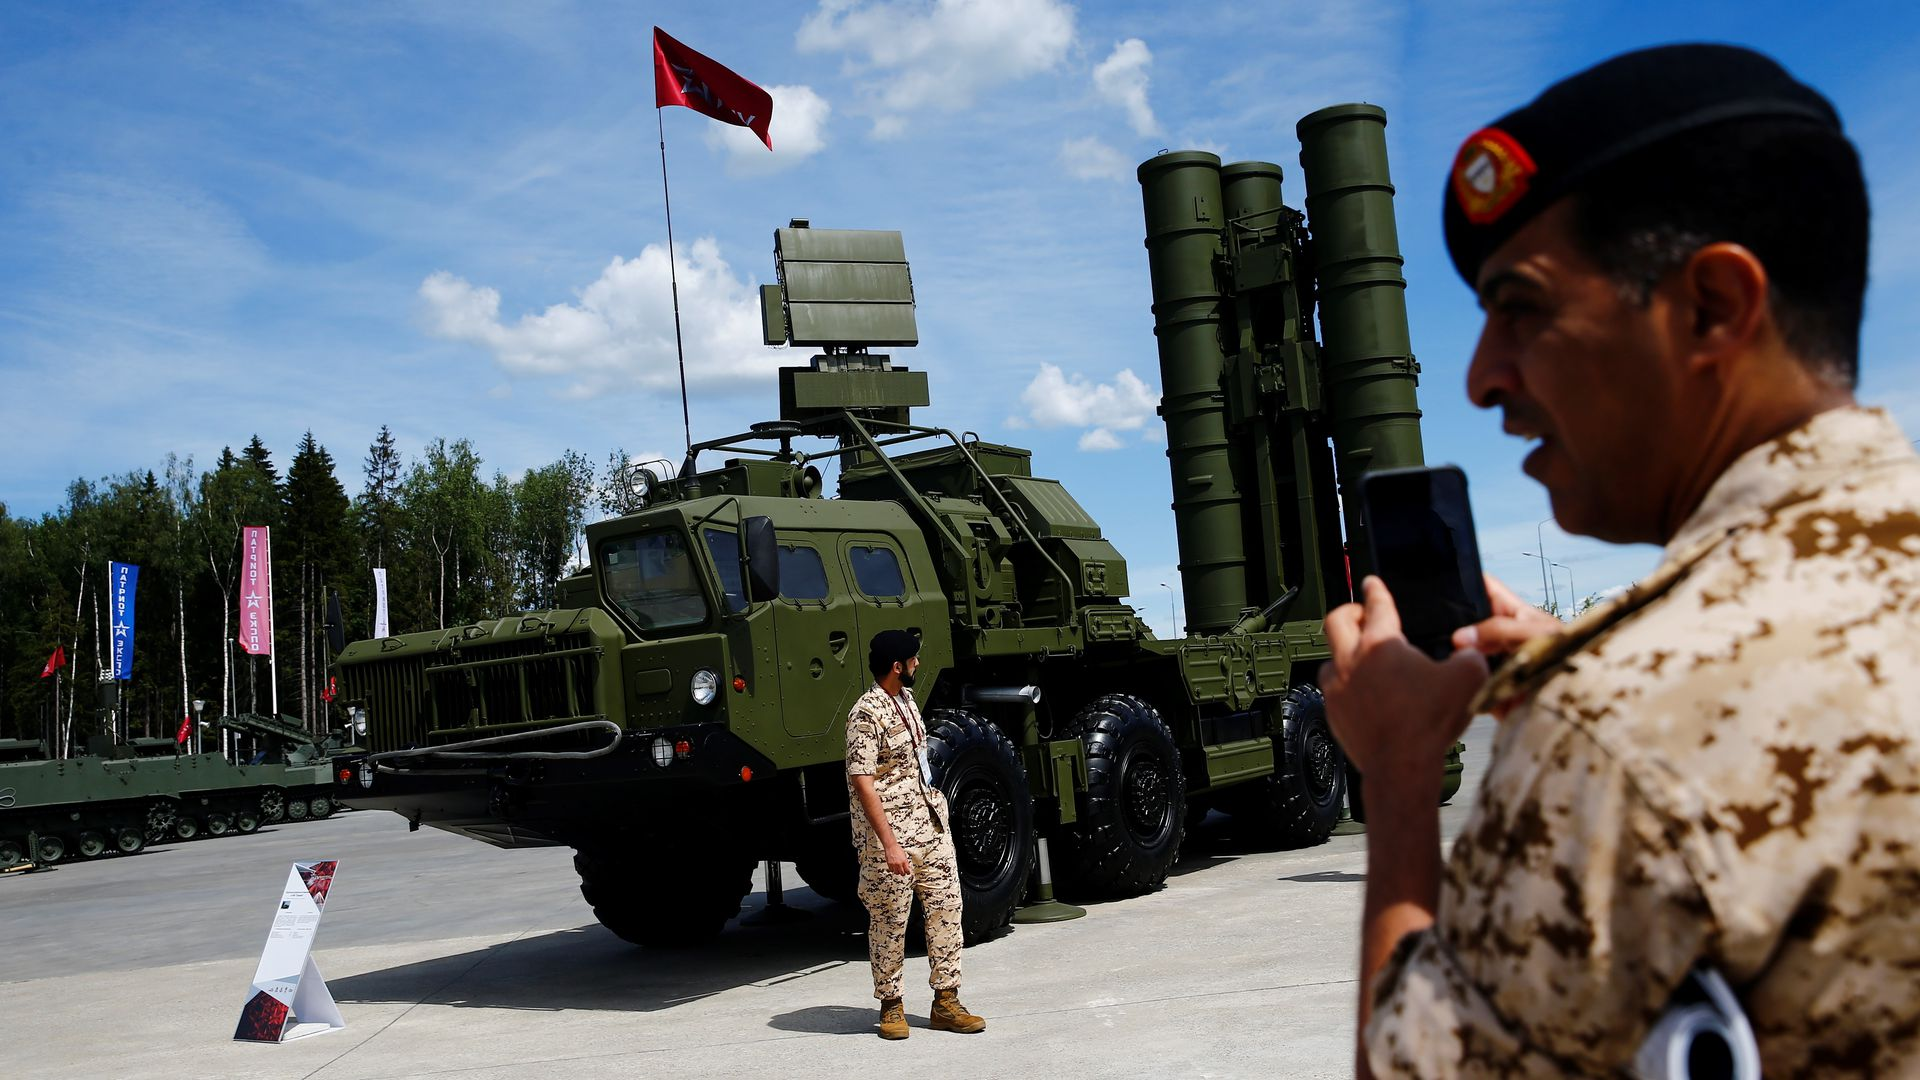 A S-400 surface-to-air missile launcher